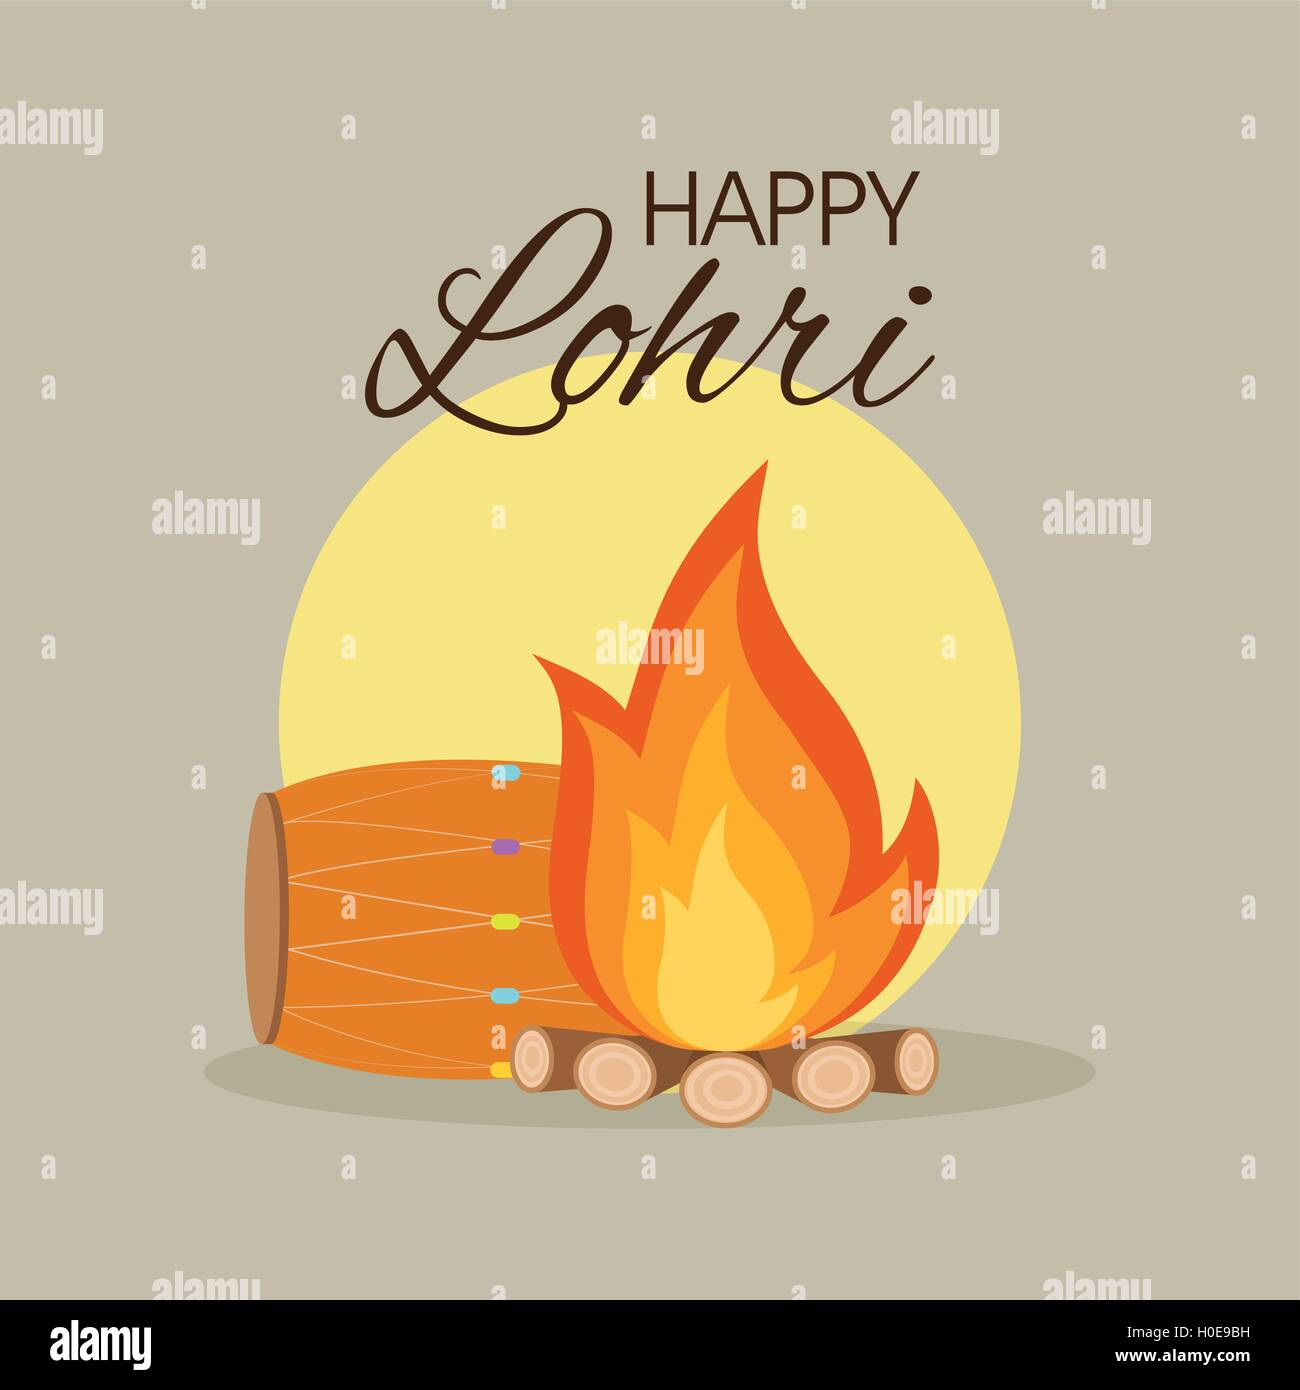 happy lohri background - Stock Vector